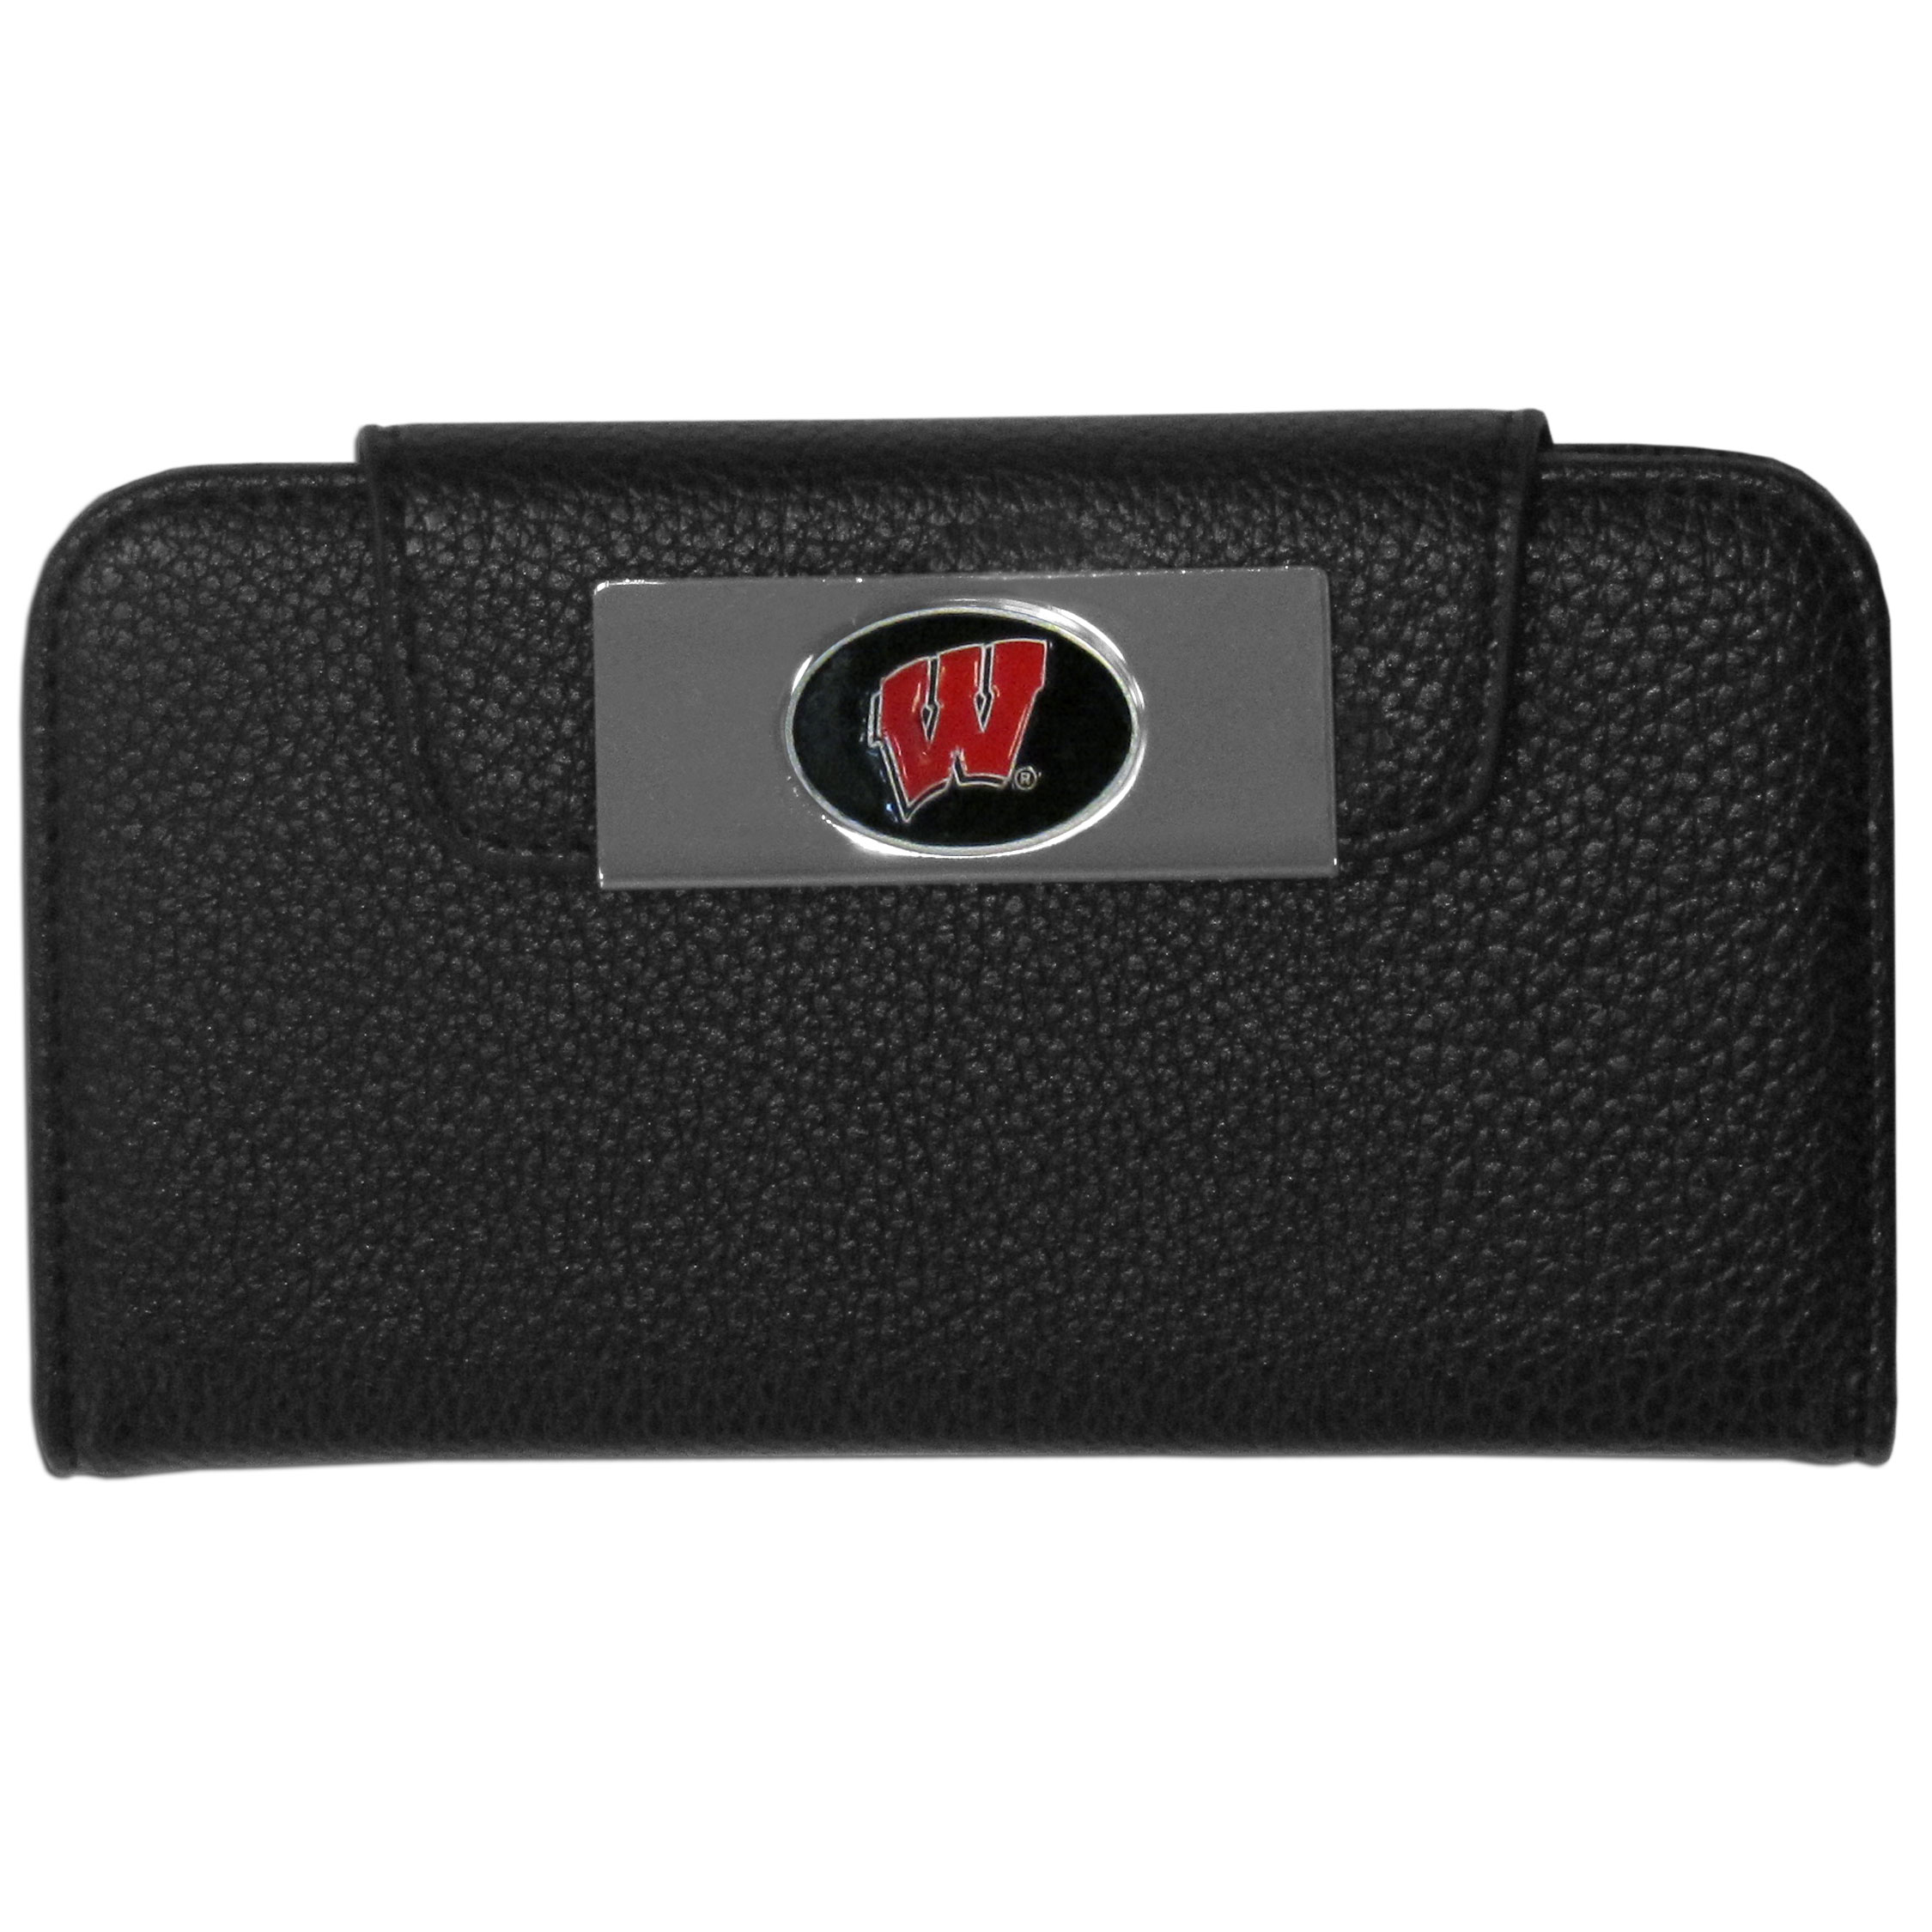 Wisconsin Badgers iPhone 5/5S Wallet Case - This new & wildly popular case is ideal for those who like to travel light! The stylish case has an inner hard shell that securely holds your phone while allowing complete access to the phone's functionality. The flip cover has slots for credit cards, business cards and identification. The magnetic flip cover has a metal Wisconsin Badgers emblem on a high polish chrome backing. Fits the iPhone 5/5S